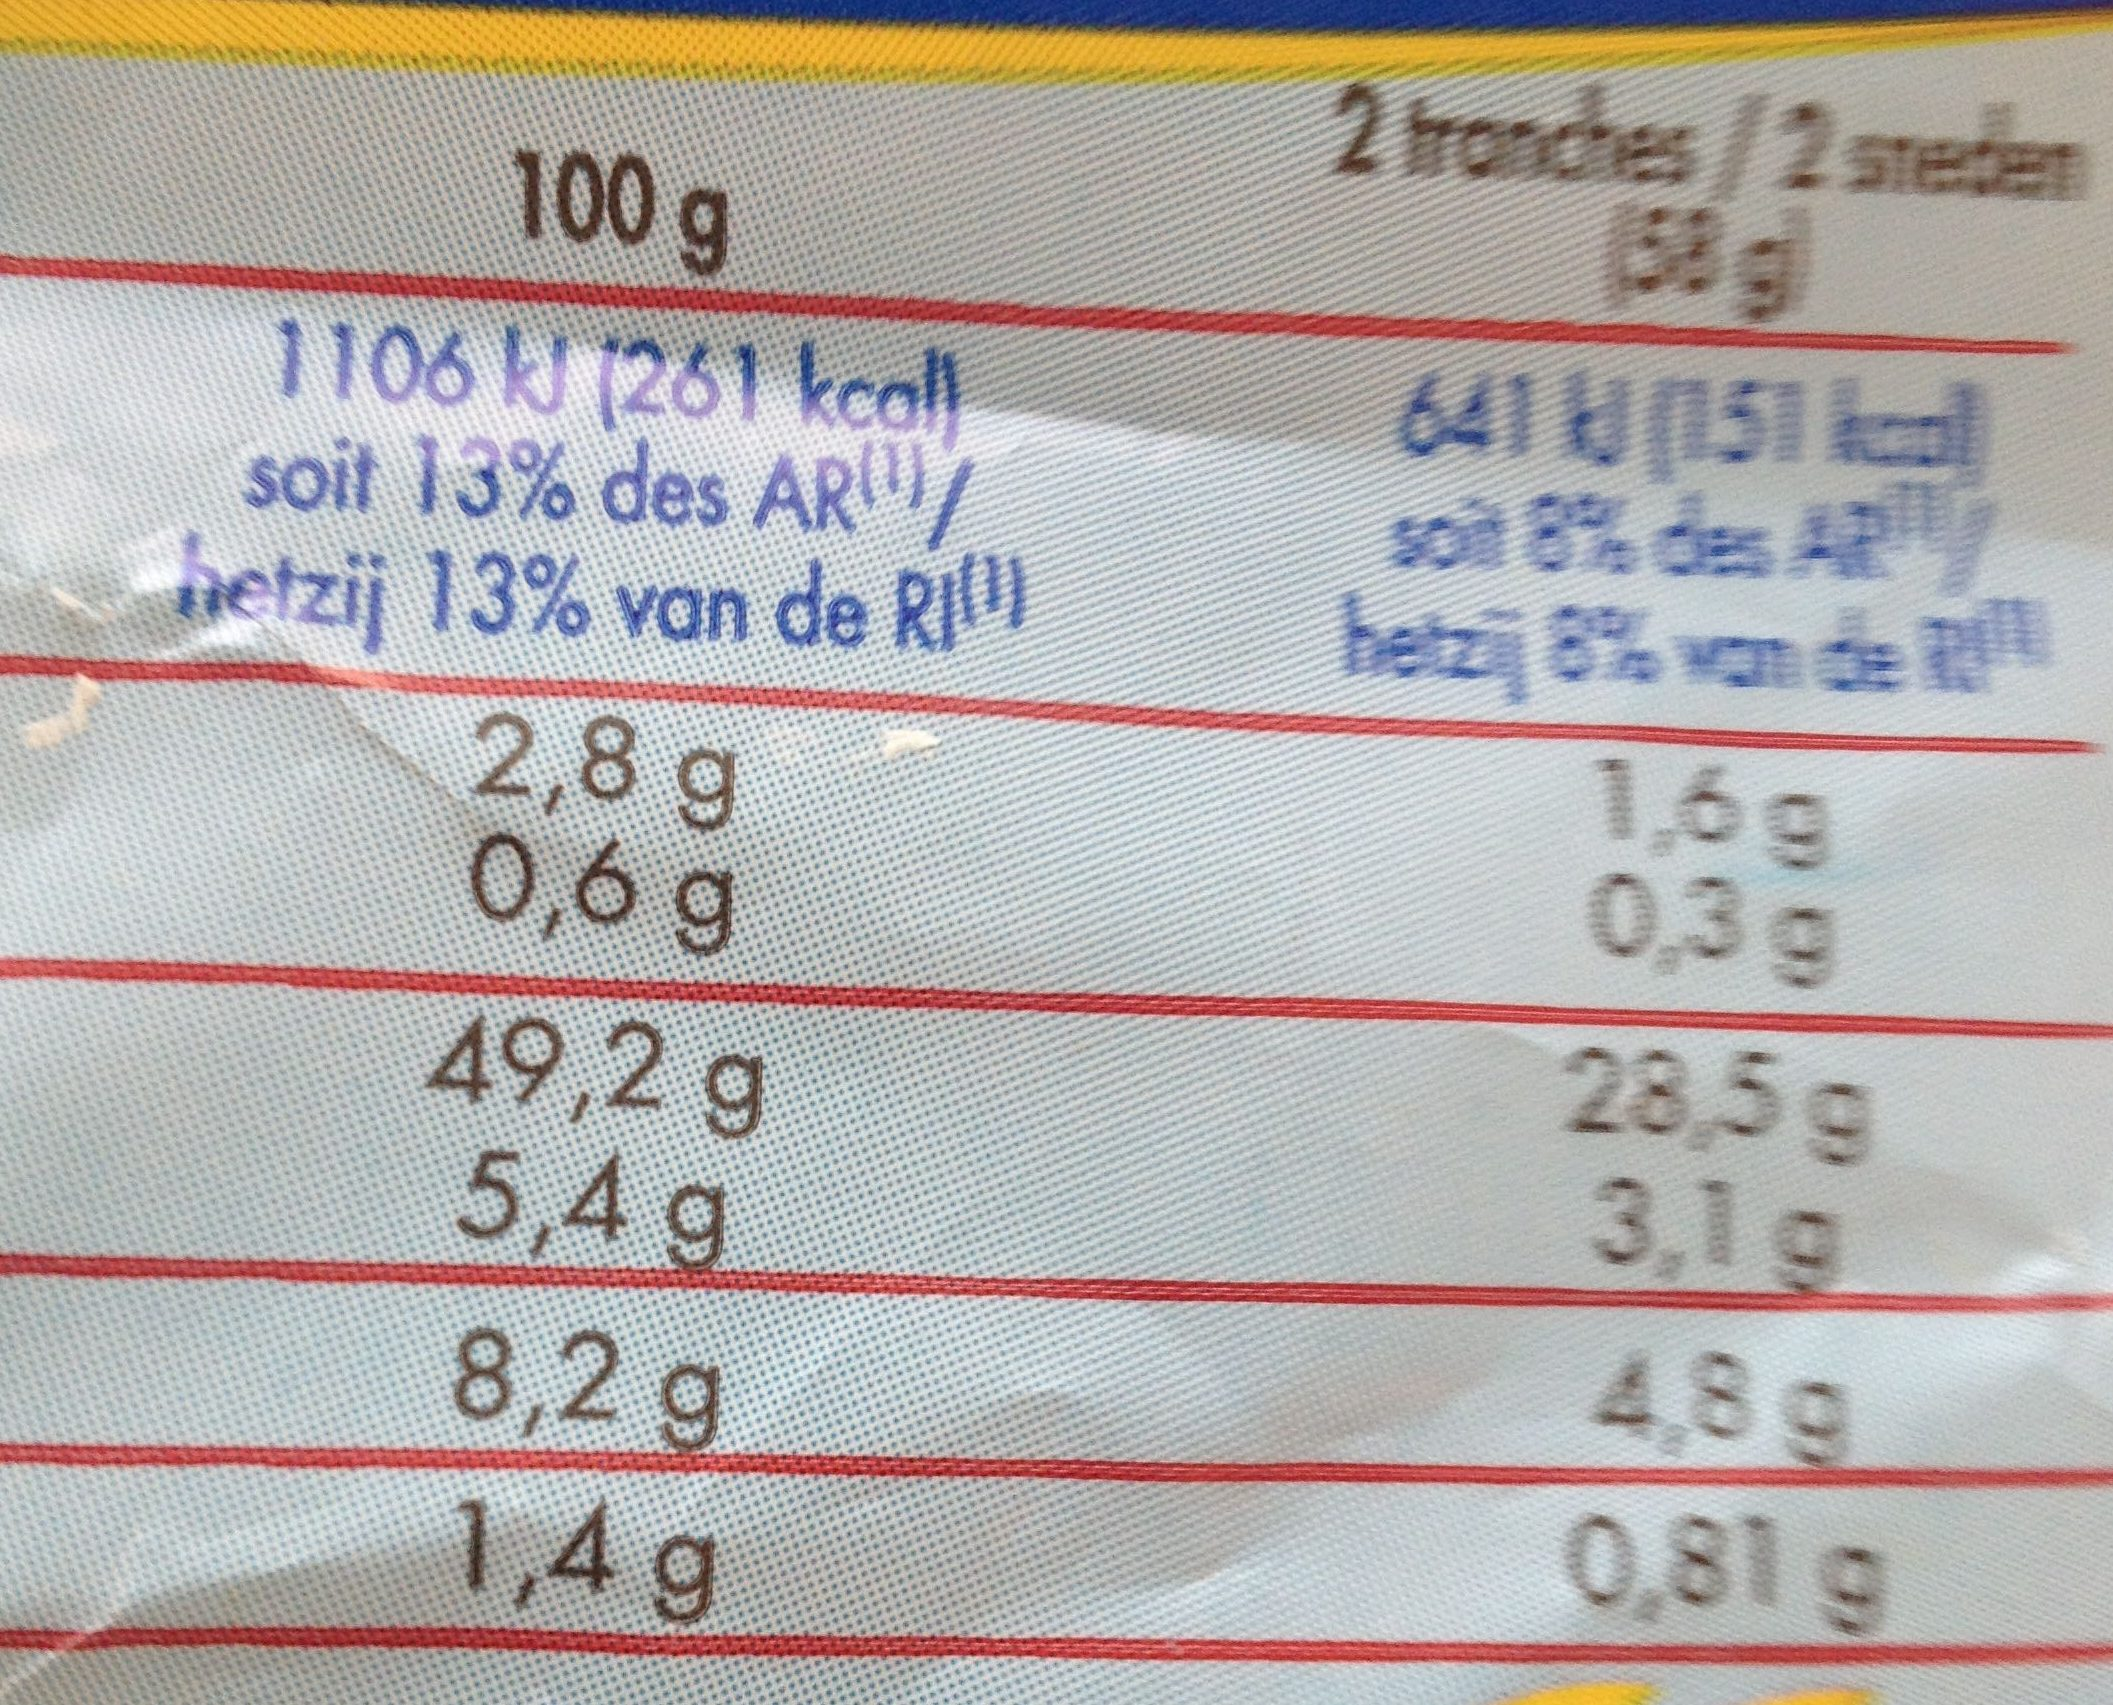 Extra Moelleux Nature 750 gr - Nutrition facts